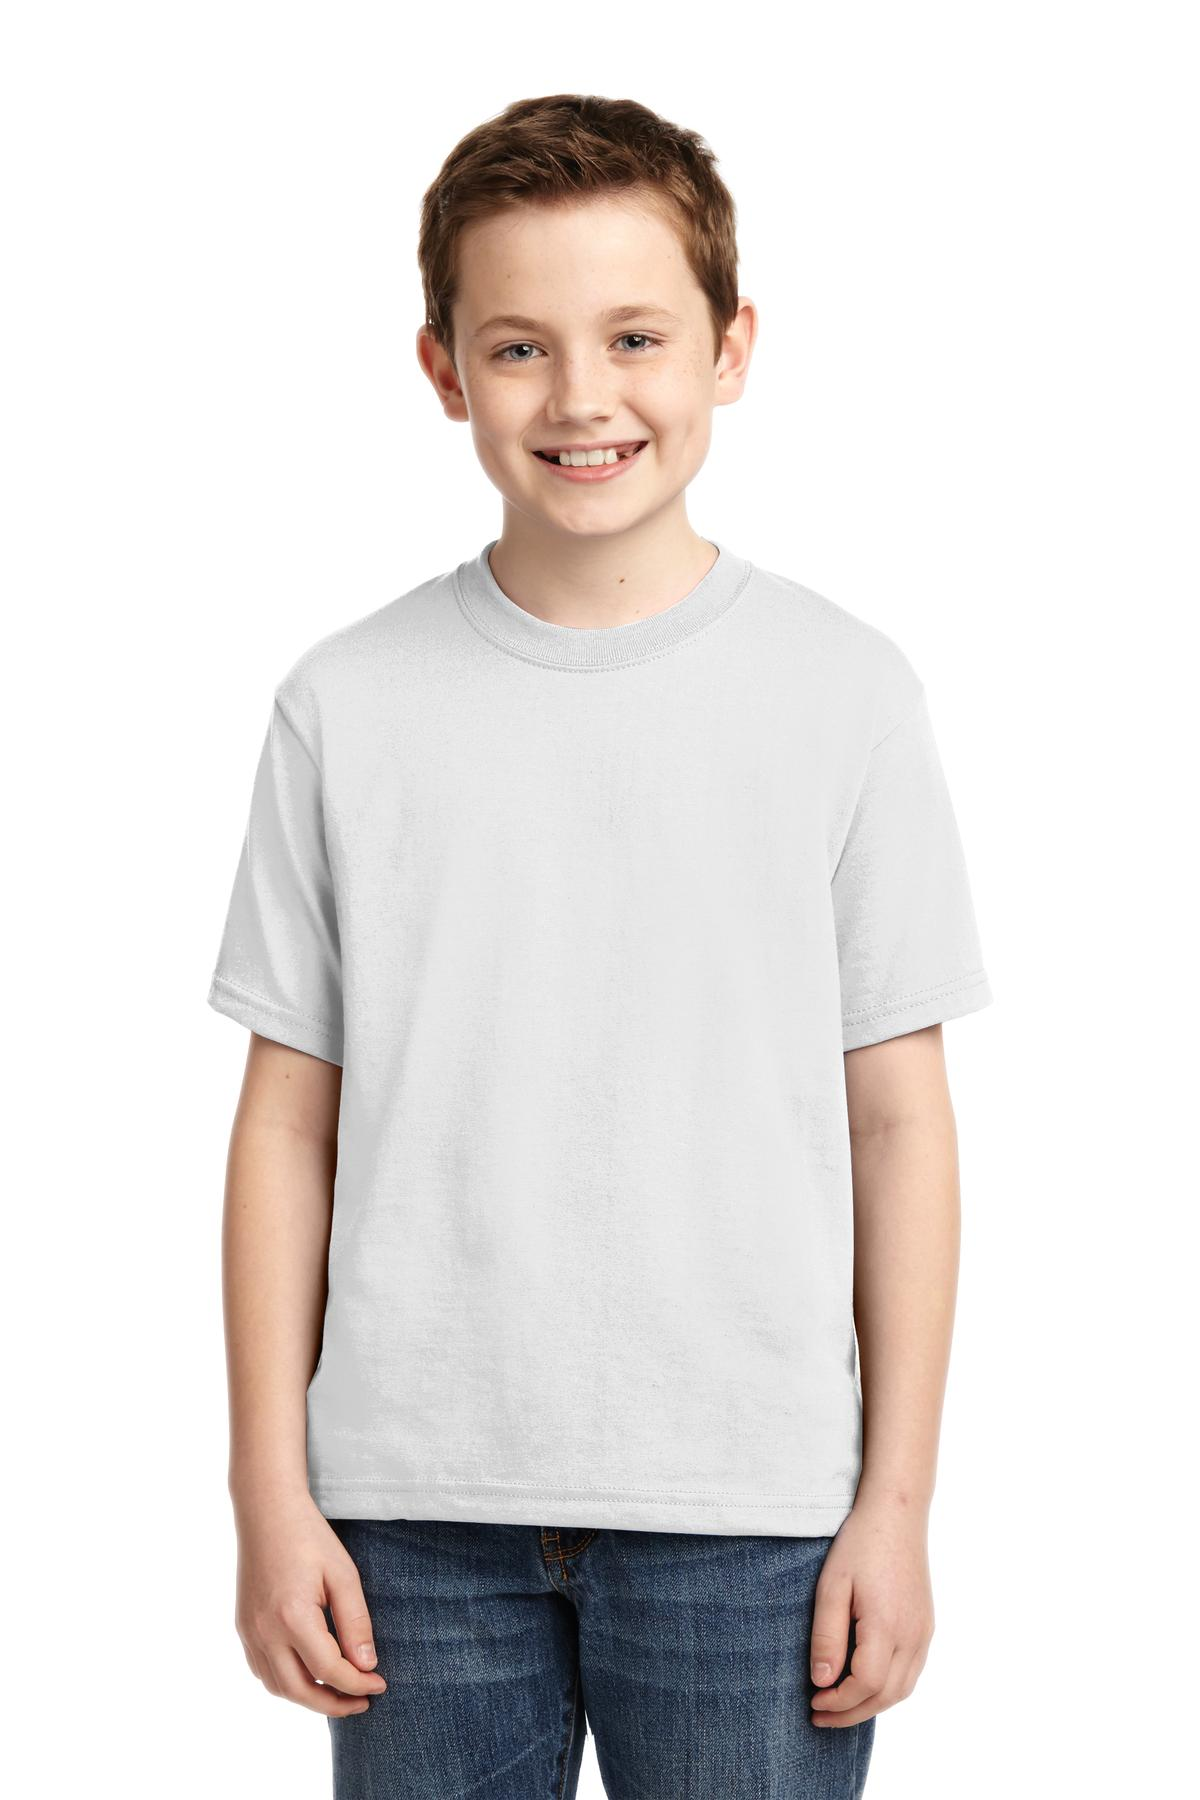 JERZEES ®  - Youth Dri-Power ®  50/50 Cotton/Poly T-Shirt.  29B - White